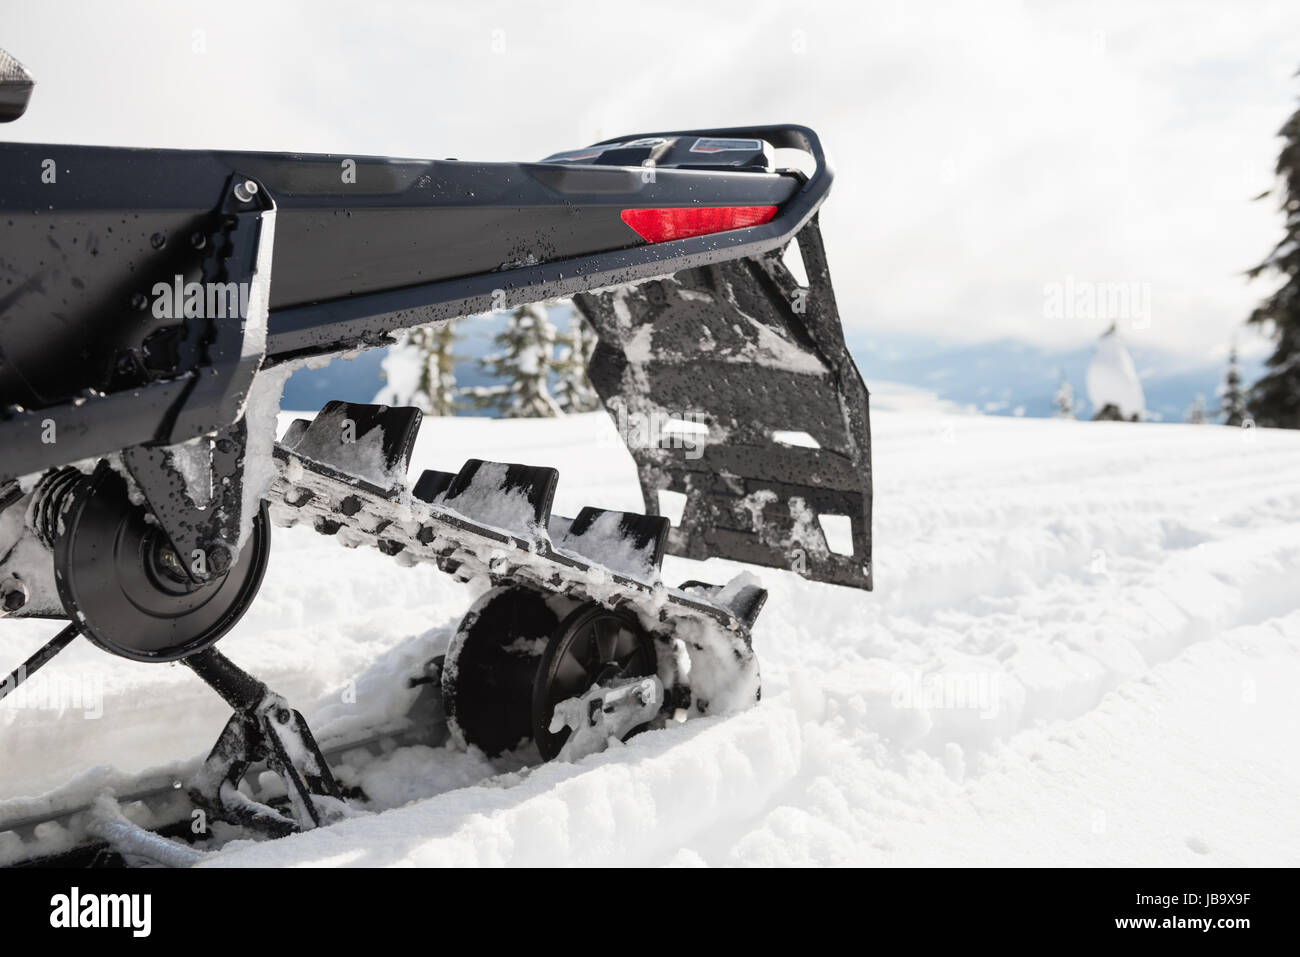 Snowmobile in snowy alps during winter - Stock Image